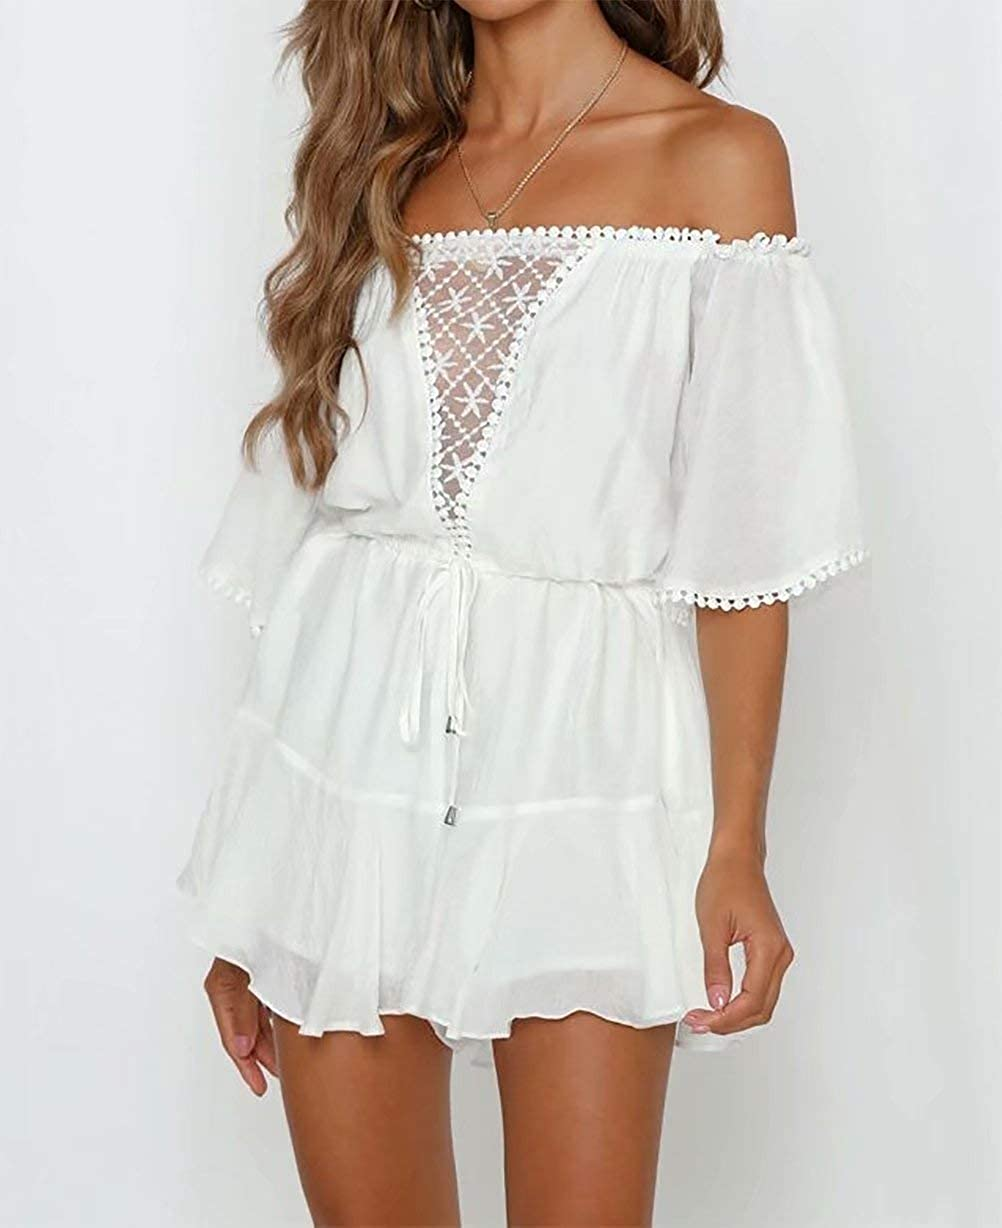 TAOHONG Womens Elegant Jumpsuit Off Shoulder Summer Lace Ruffle Playsuit Short with Belt Romper Perspective Backless